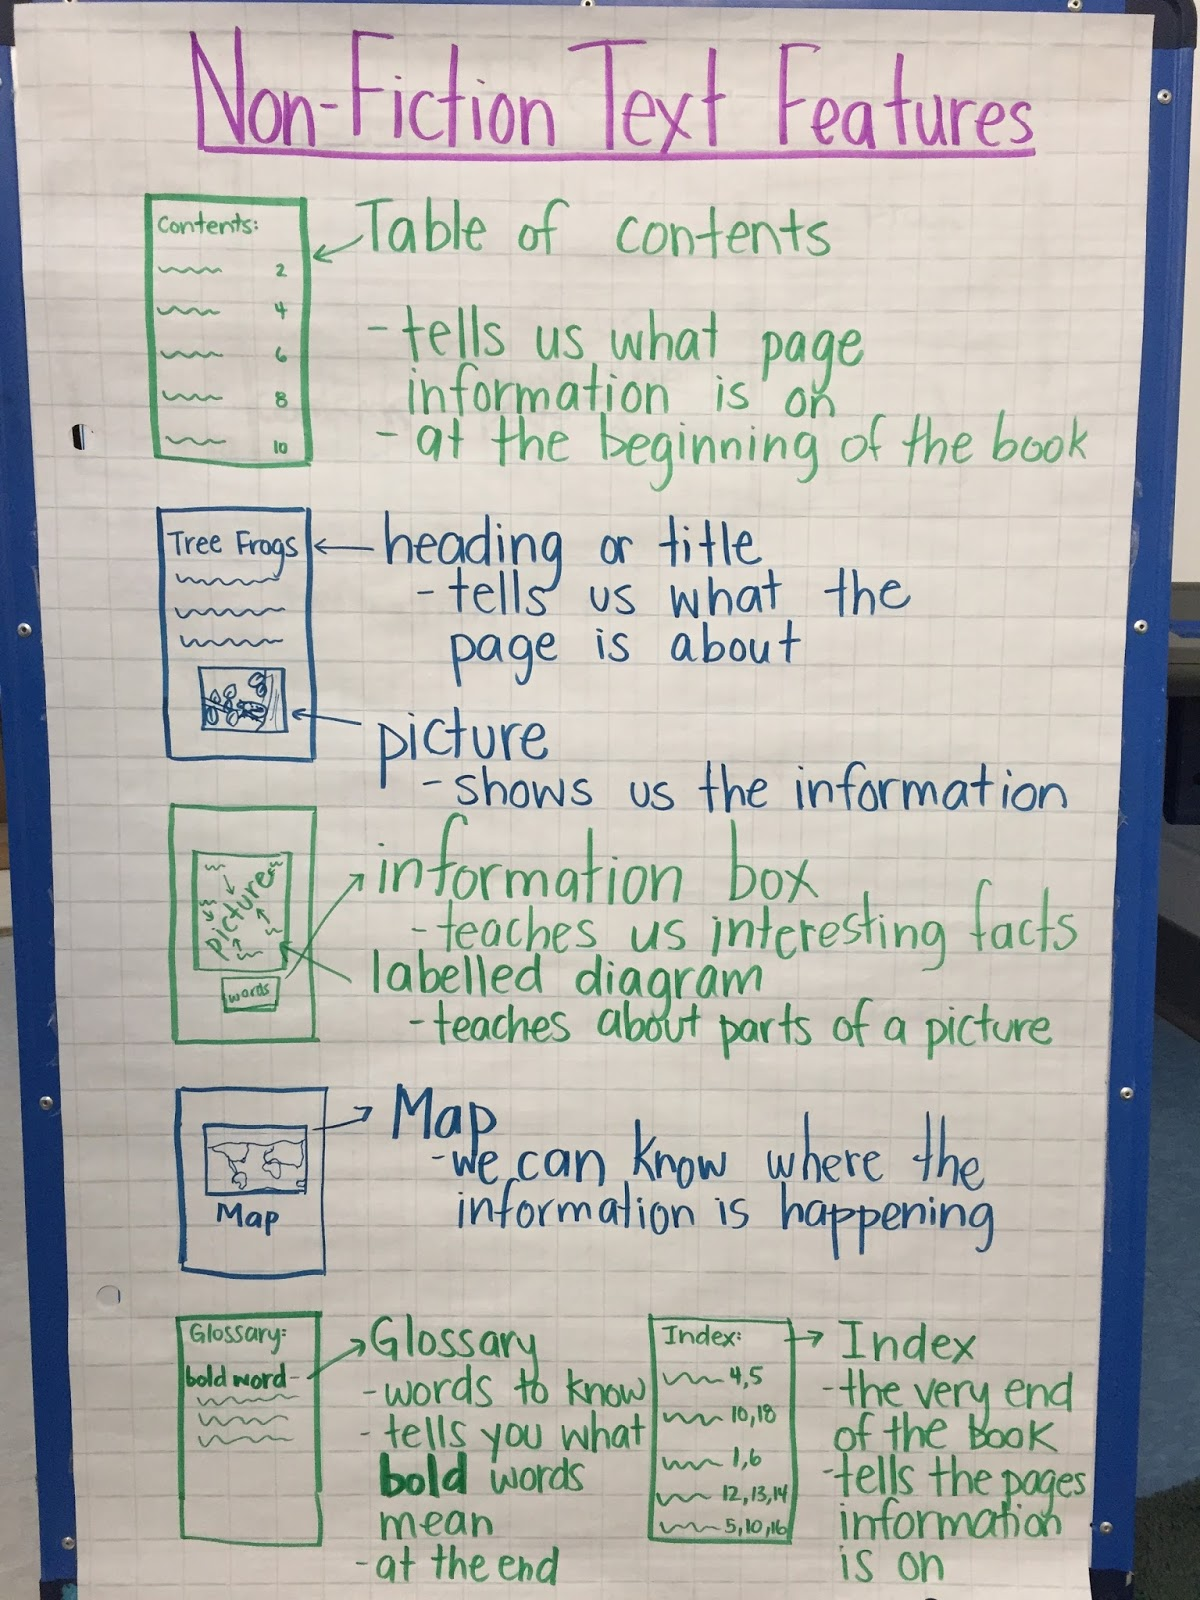 Thinking And Learning In Room 122 Non Fiction Text Features